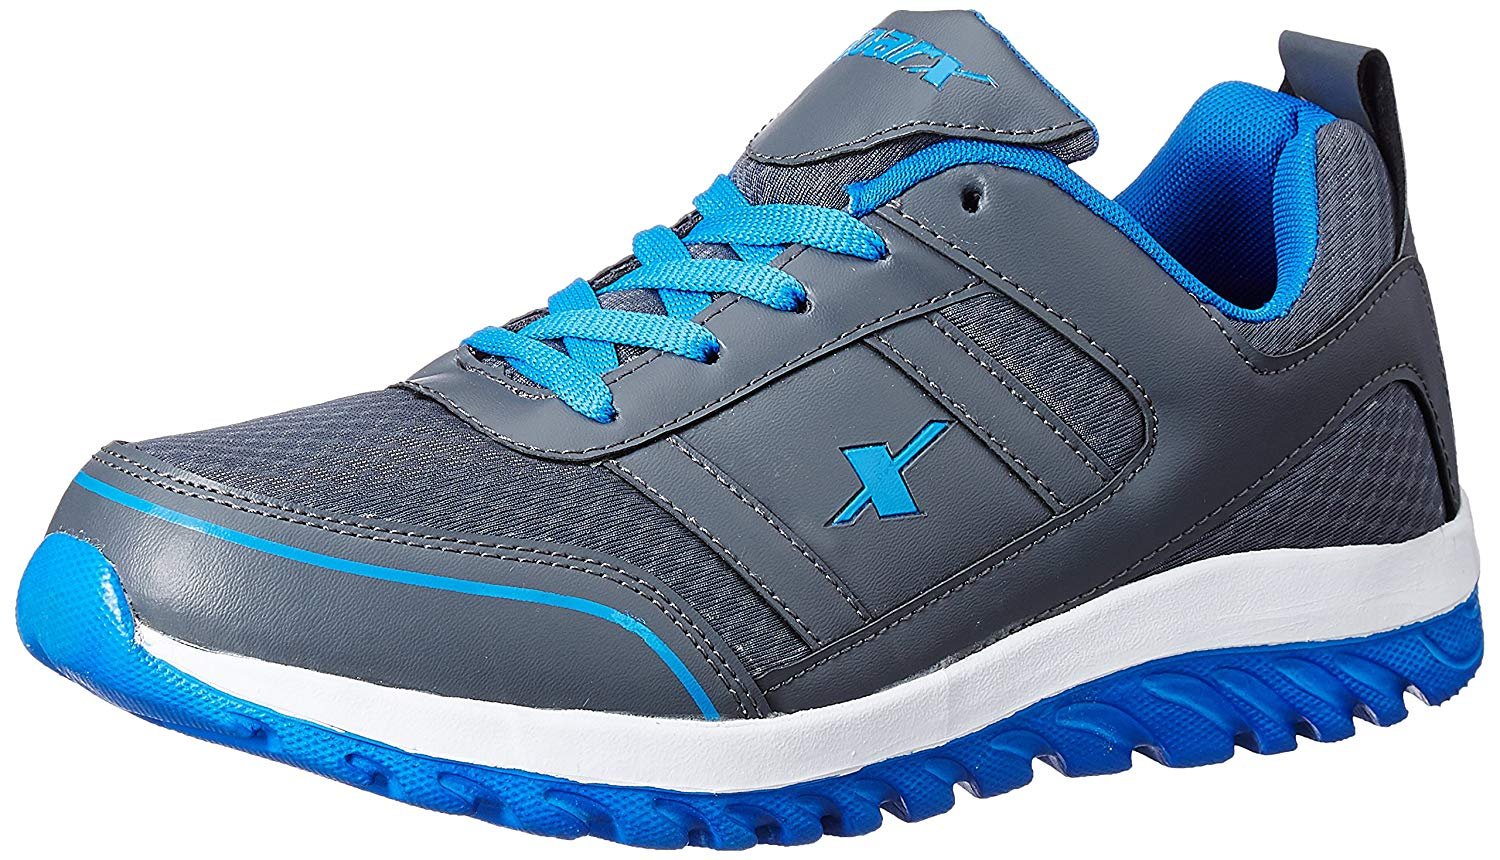 SPARX Trendy Grey Blue Running Shoes image 1